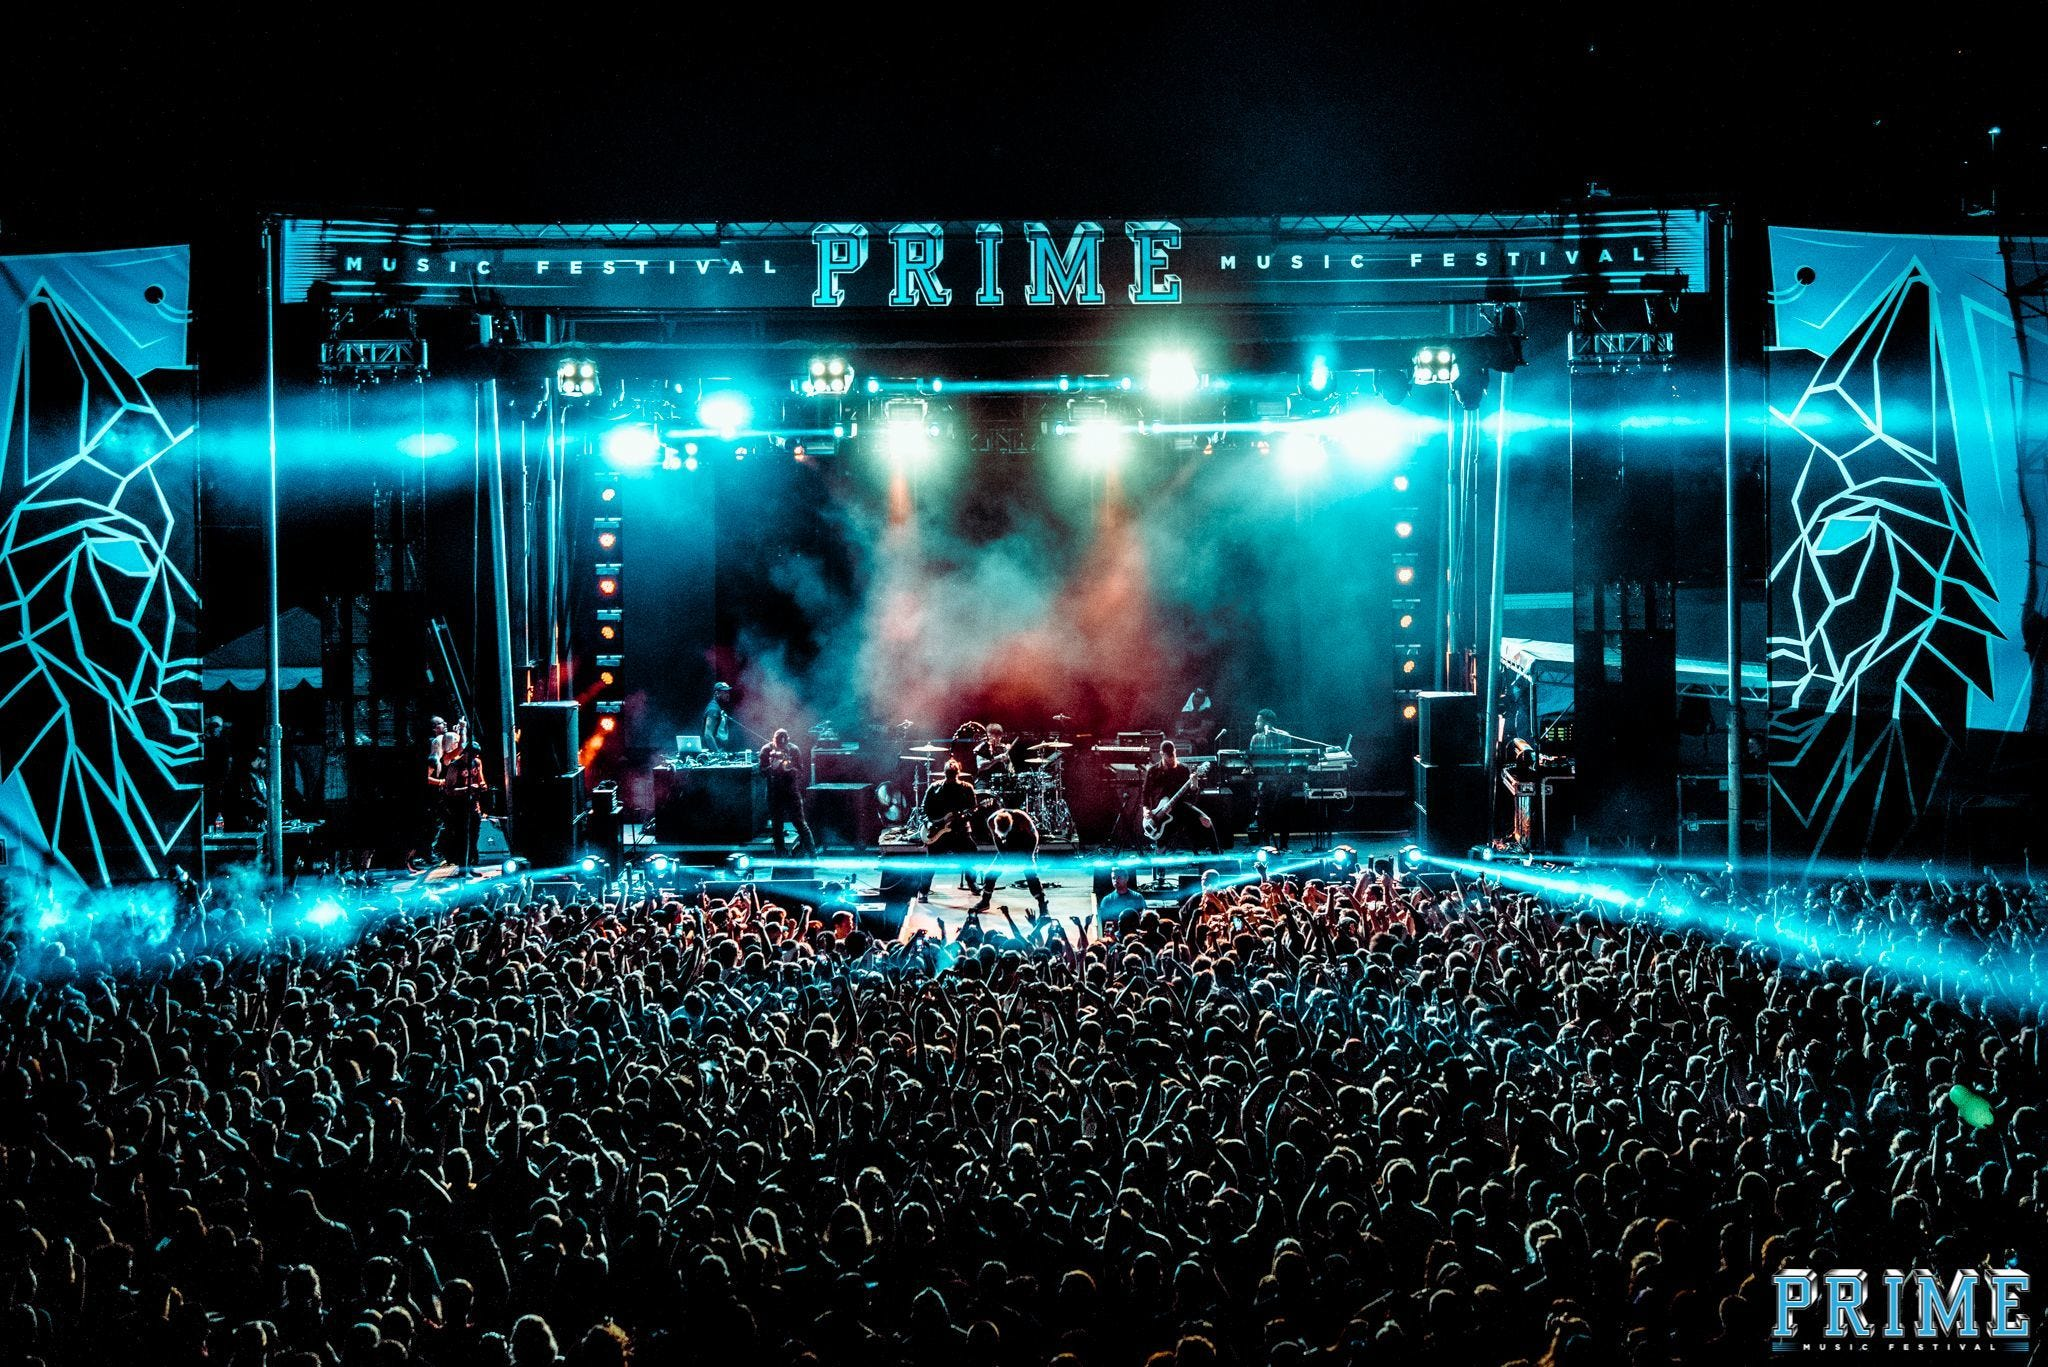 The PRIME Music Festival is expected to kick off its third year sometime in late summer or early fall at Adado Riverfront Park. The event has a hip-hop and electronic dance music focus.